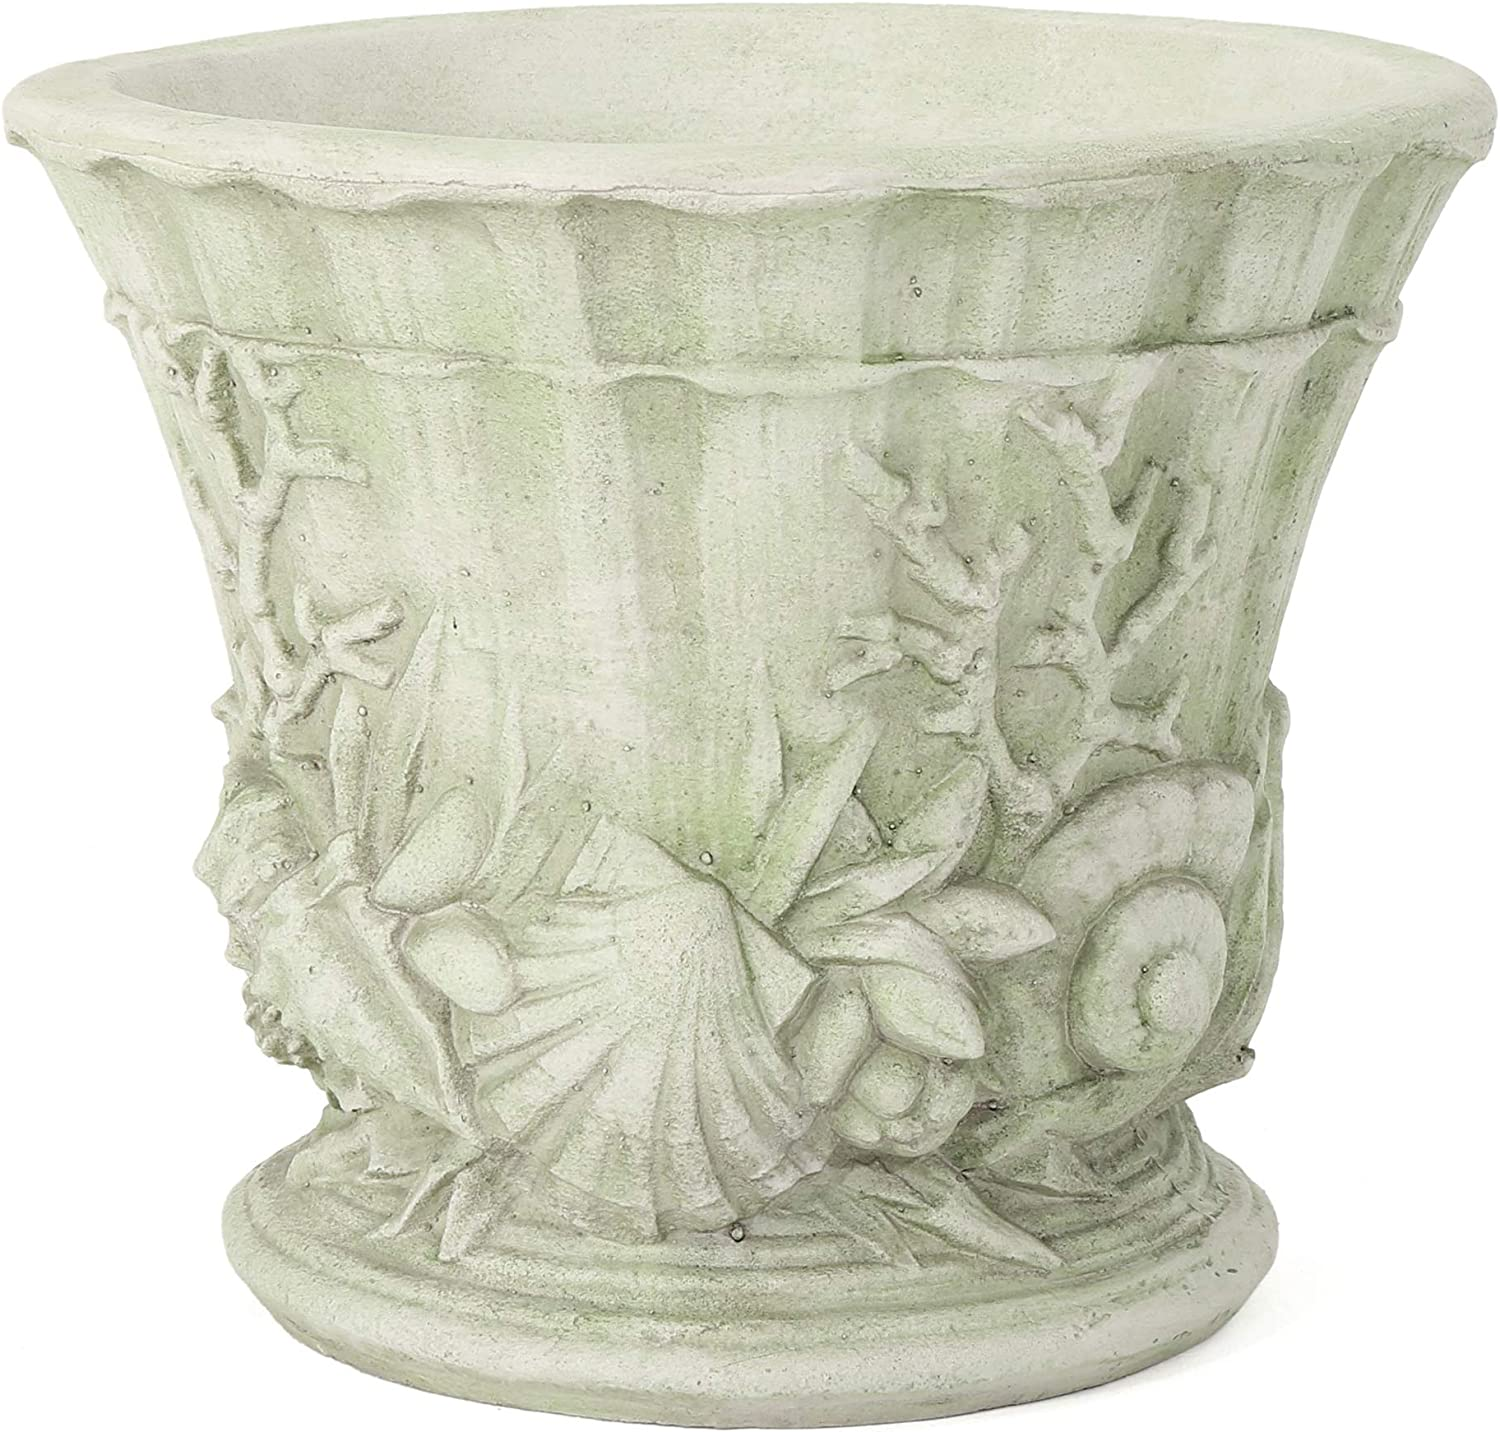 "Christopher Knight Home Guava Outdoor 15"" Cast Stone Urn, White Moss"